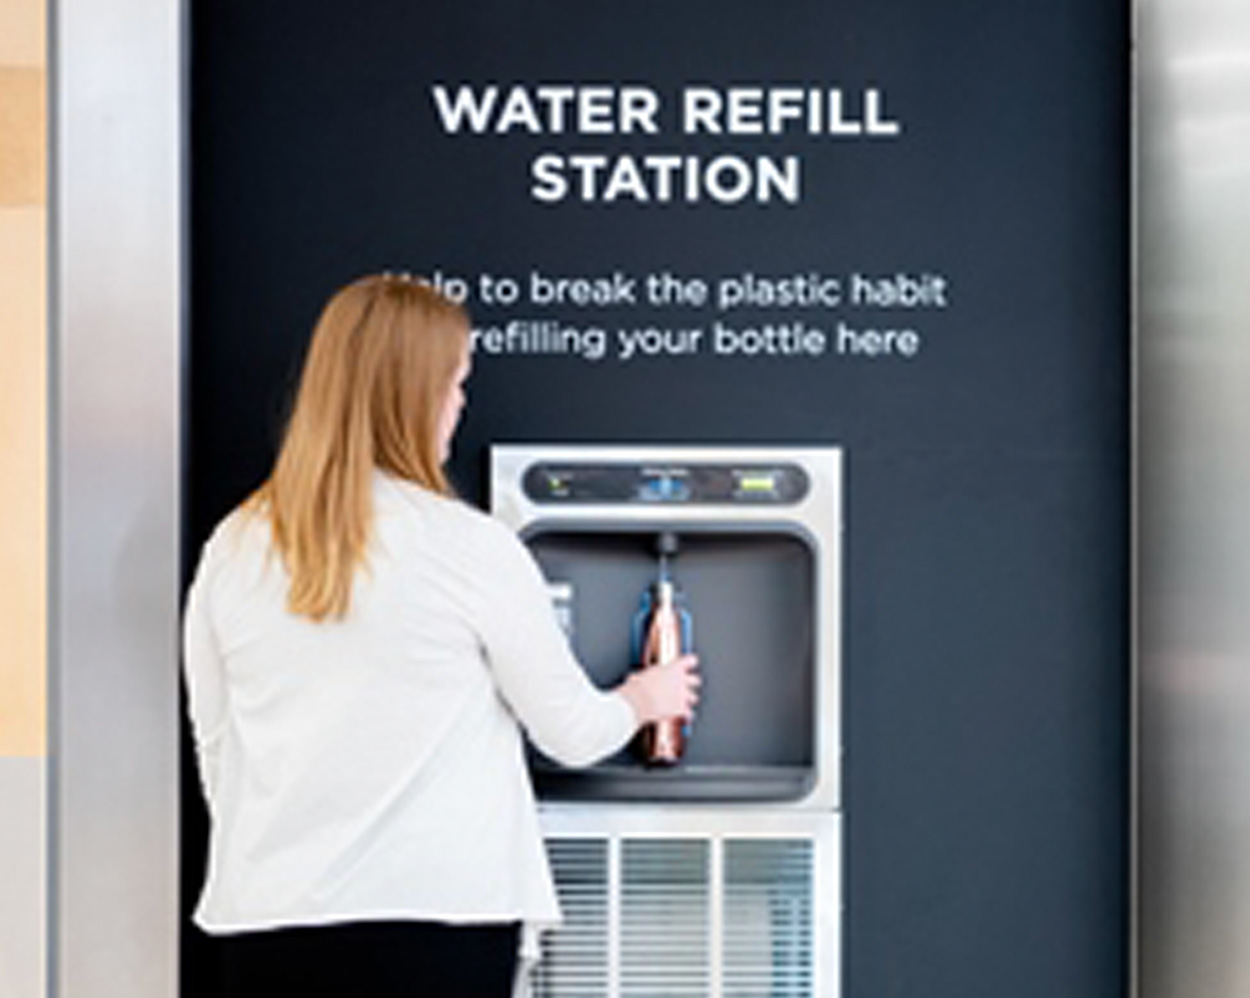 Canary Wharf Group Aims to Cut 100,000 Plastic Bottles with